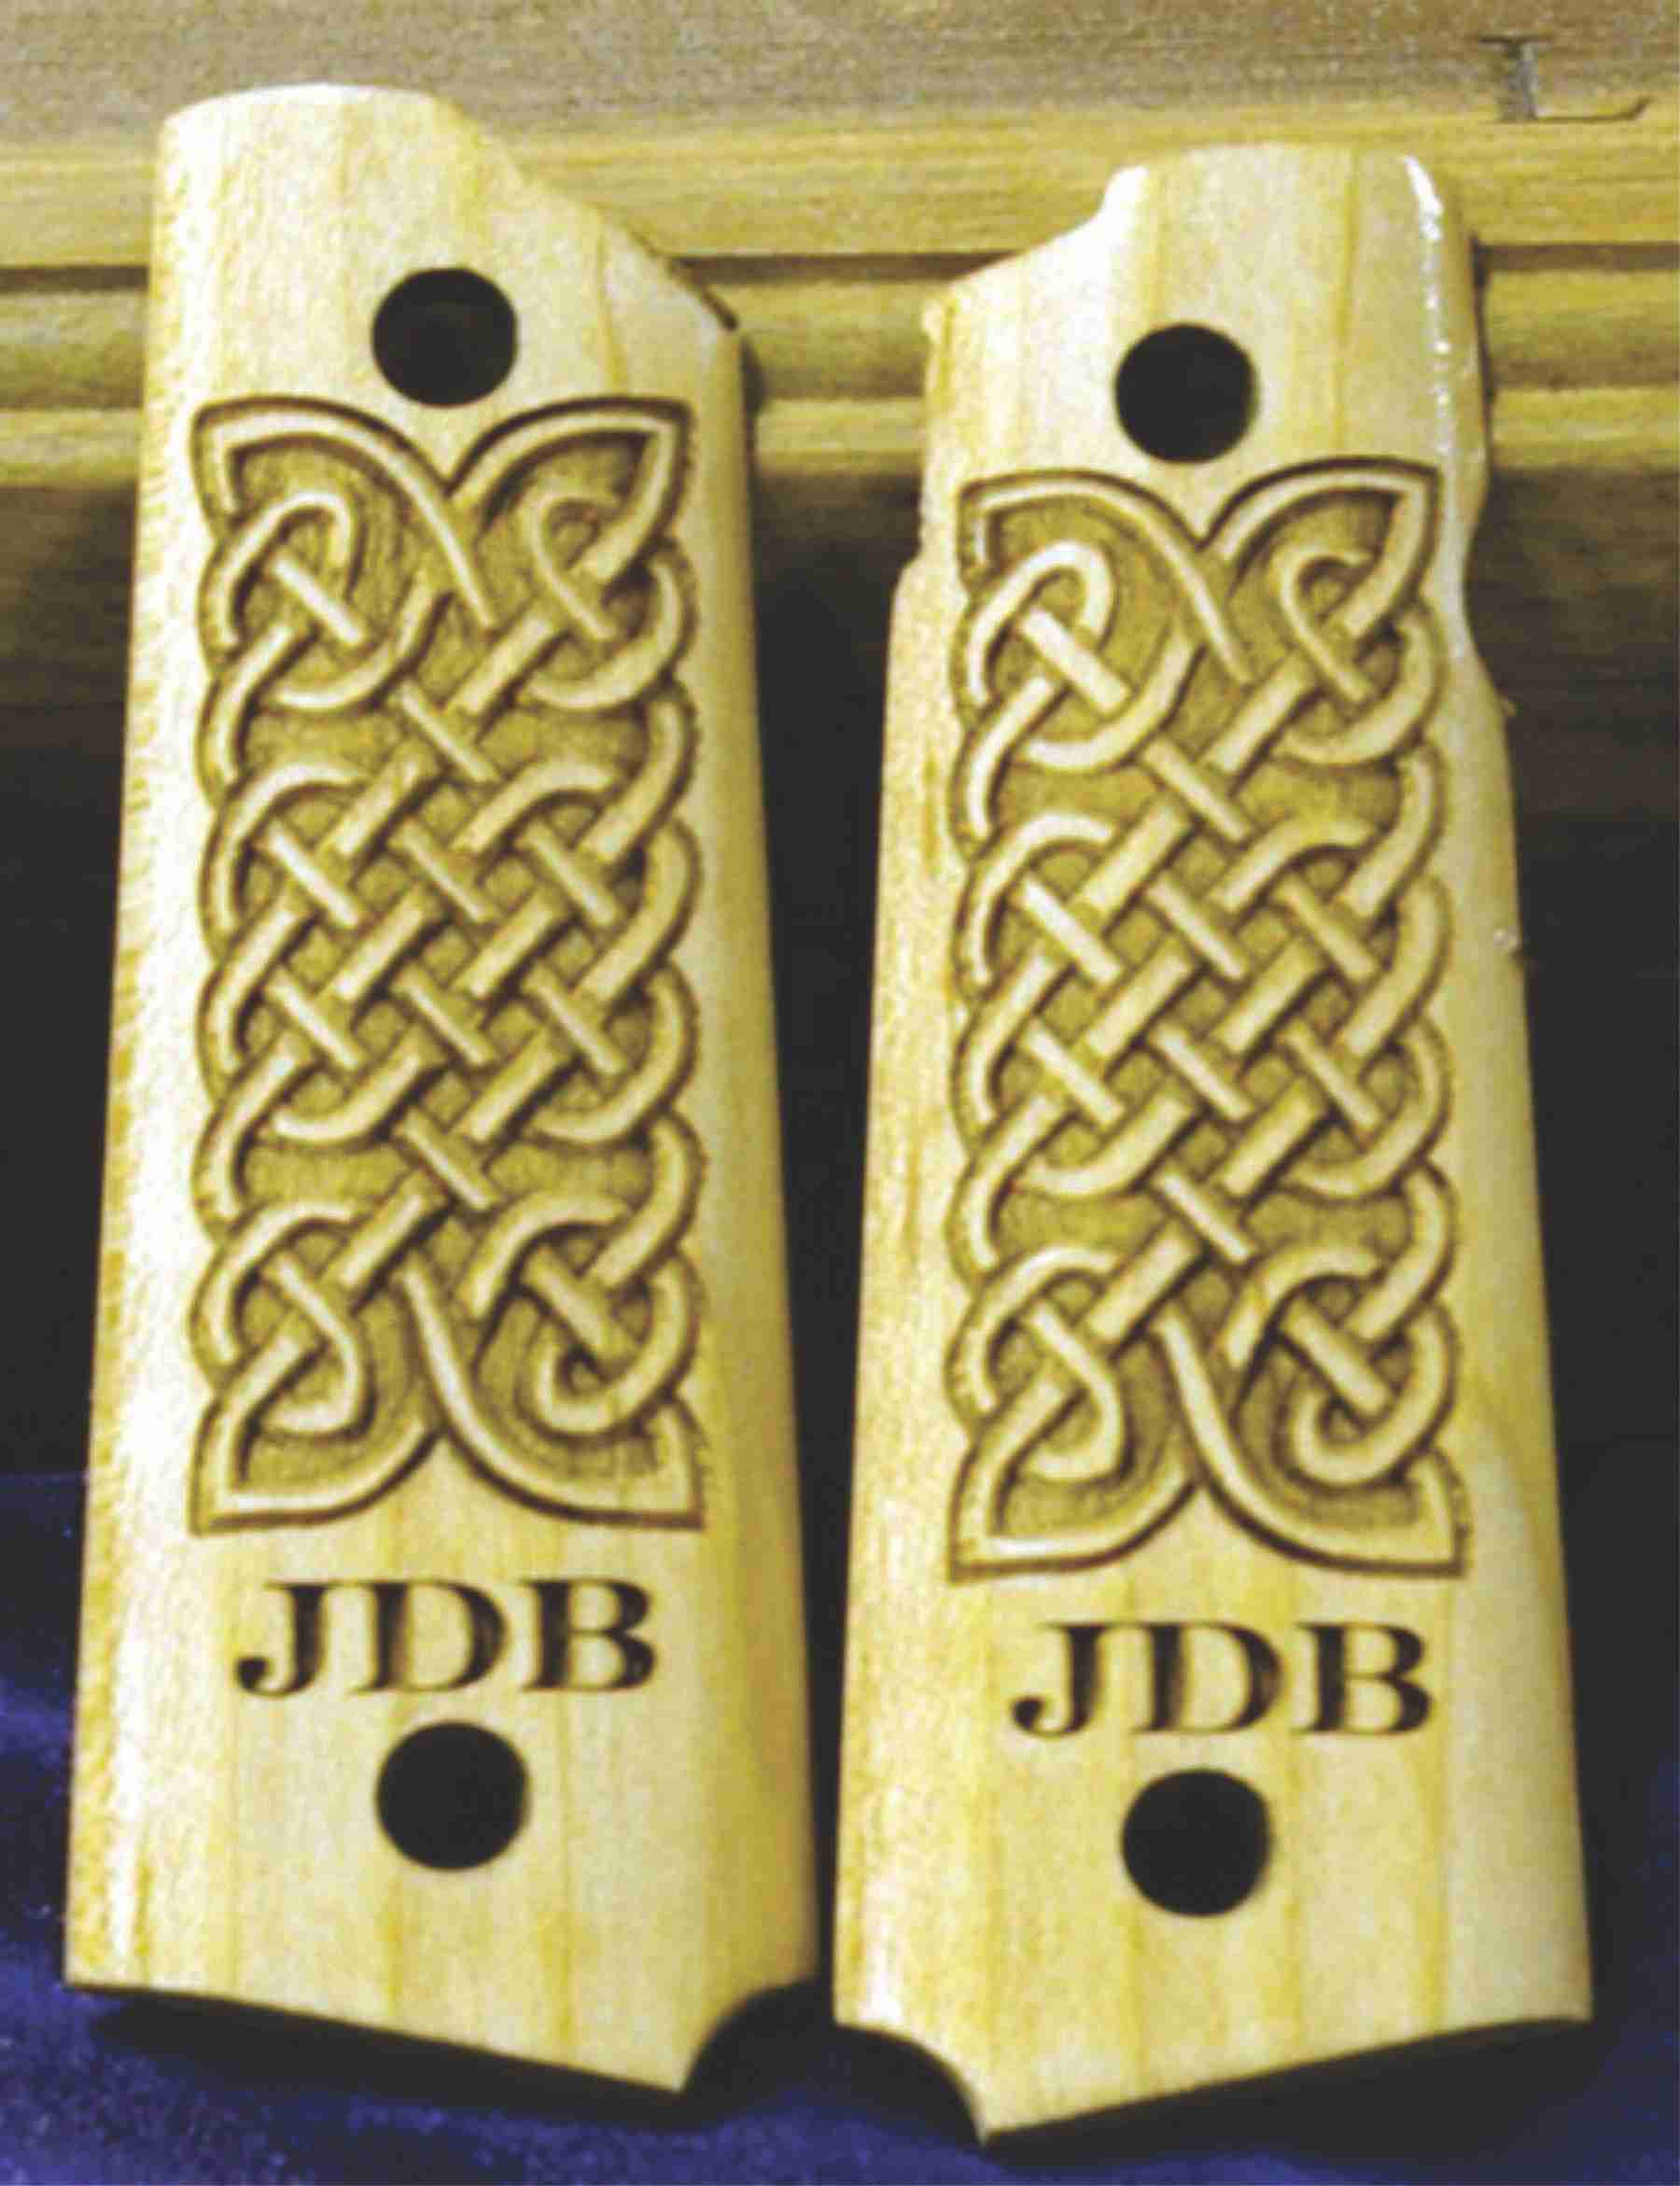 Celtic Knot Engraved Grips For Taurus